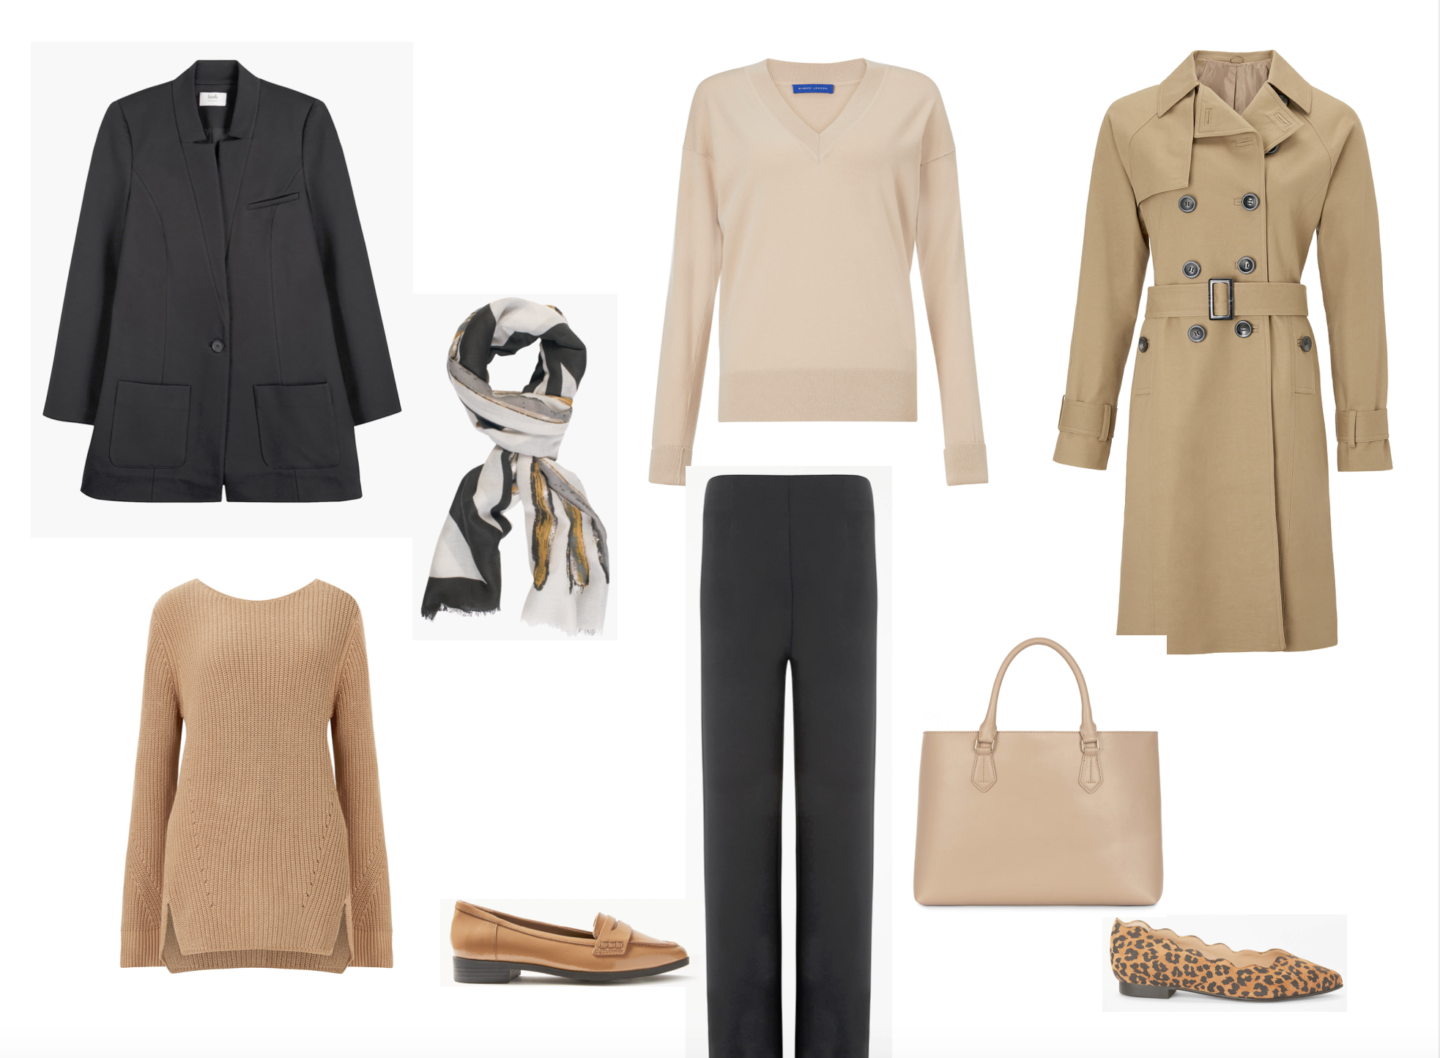 Black and beige outfit combination